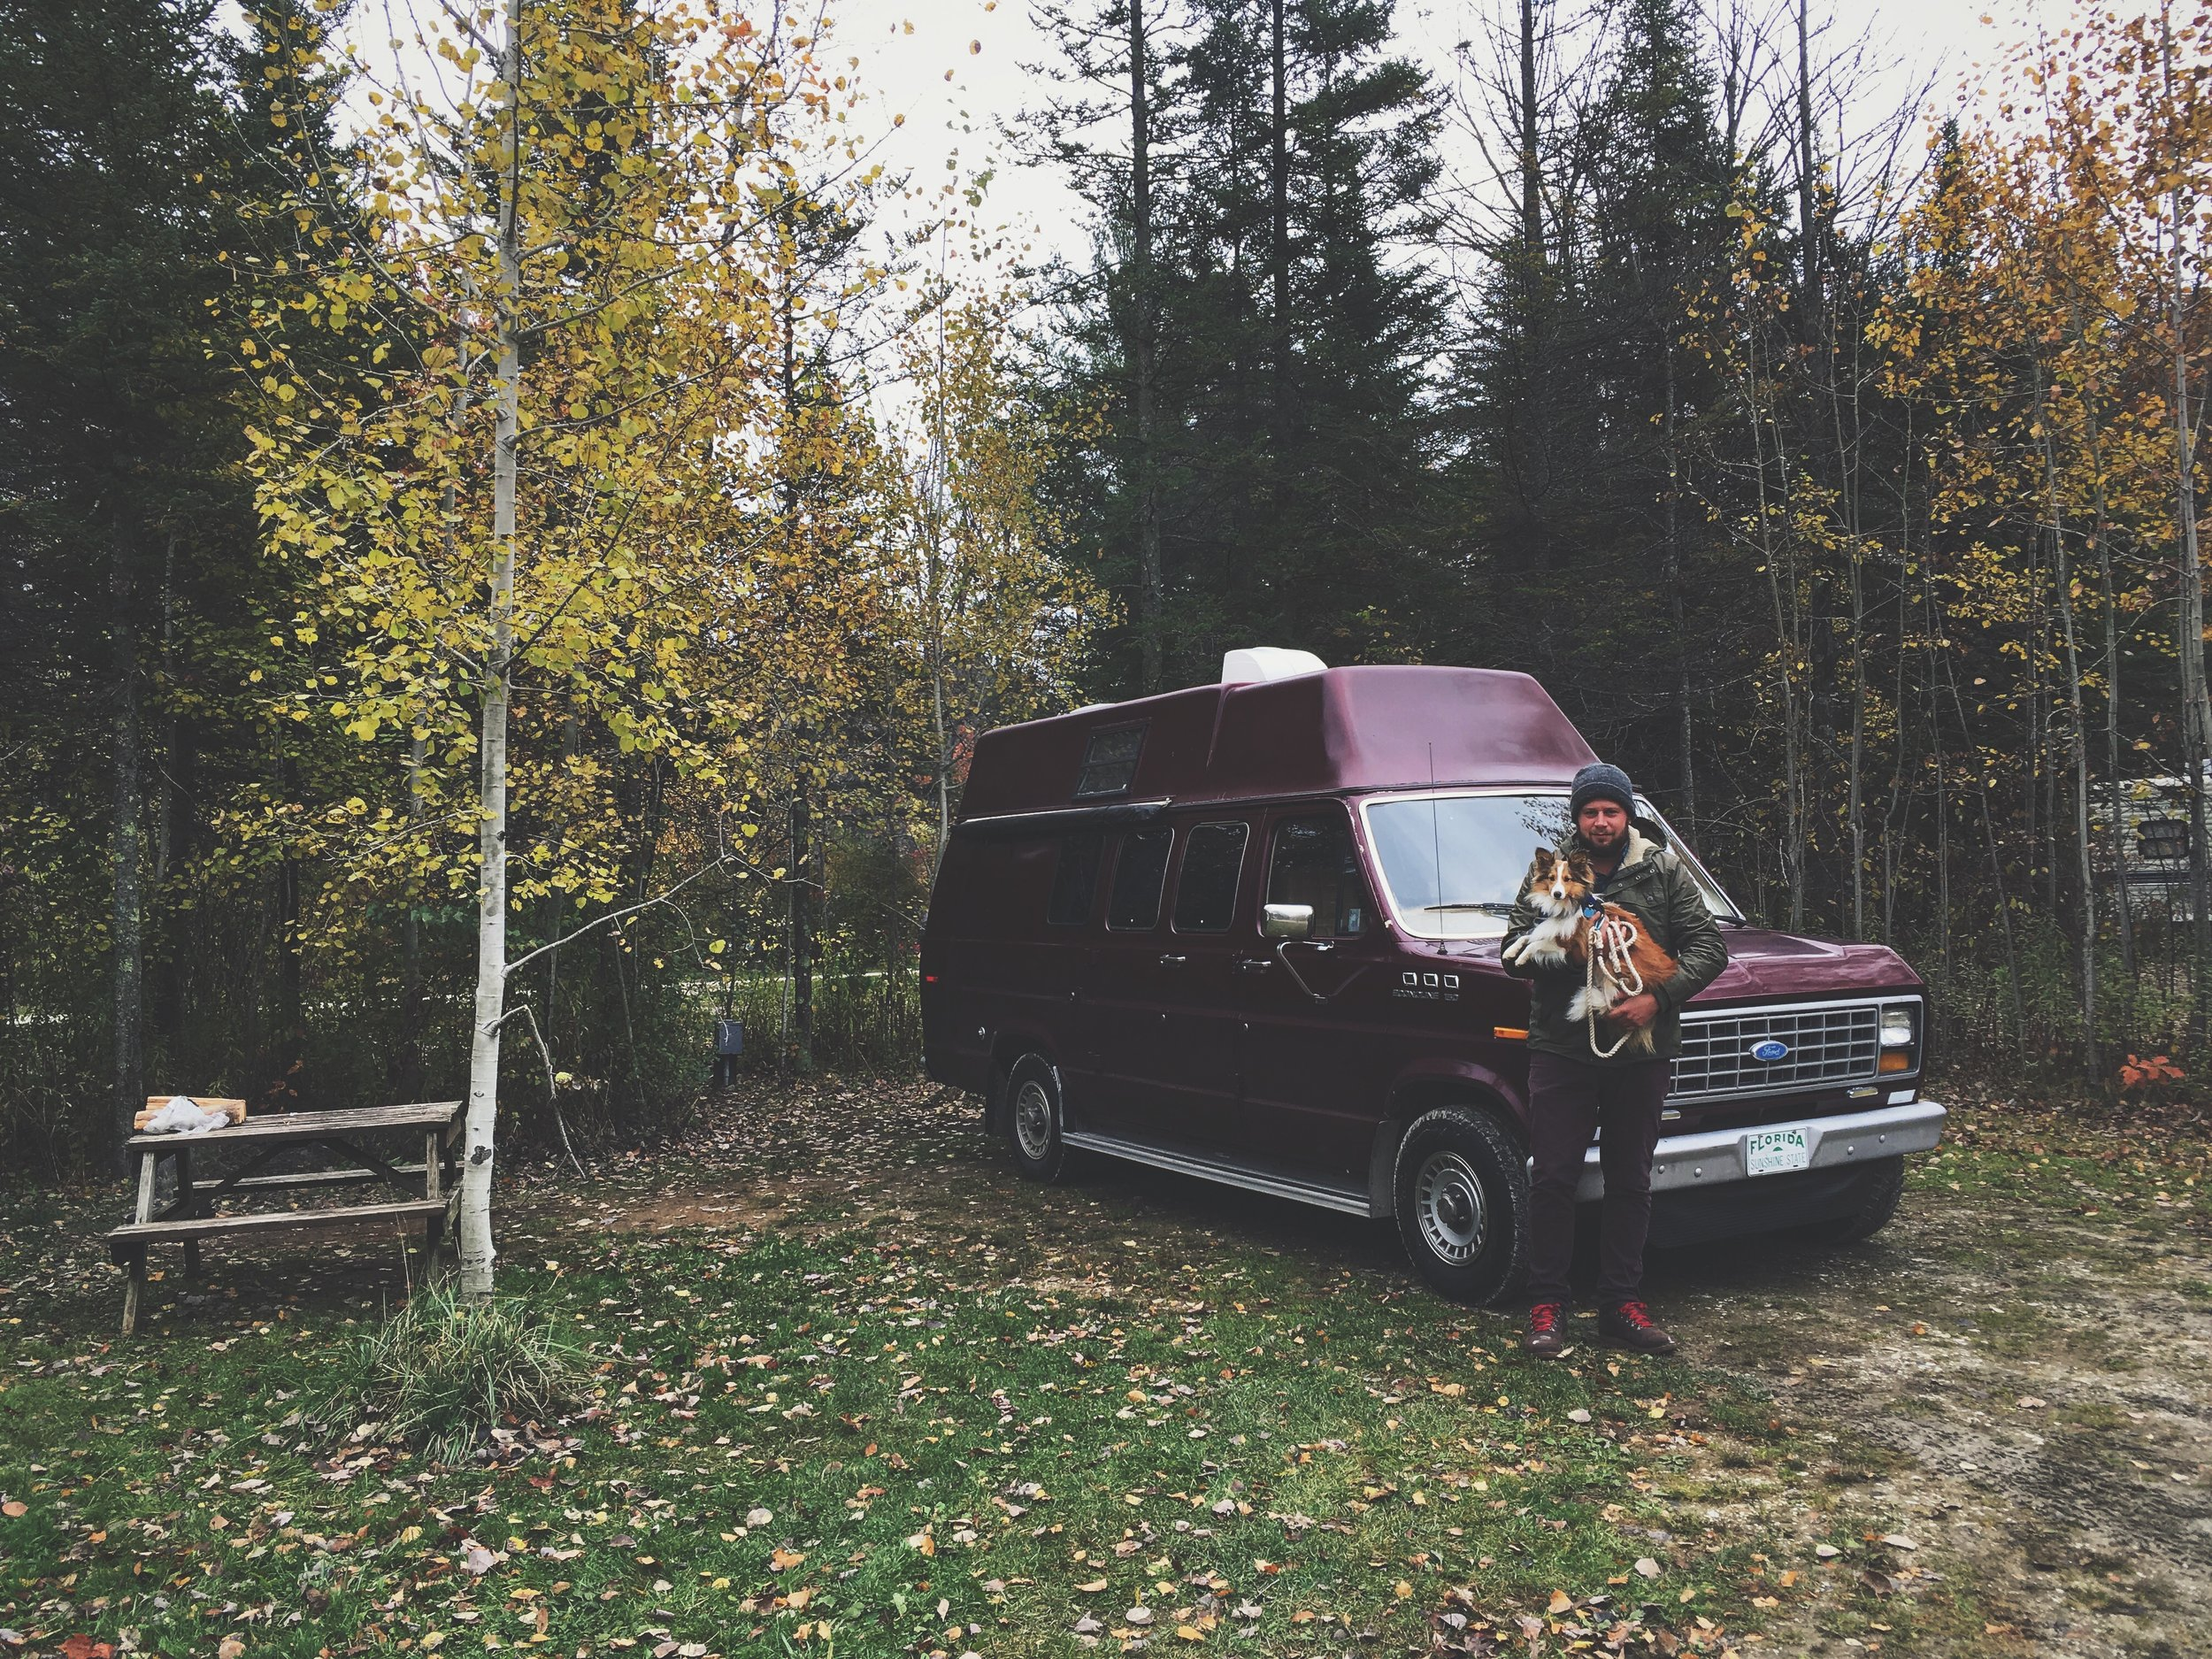 vermont-randonnee-expedition-canine-camping-chien